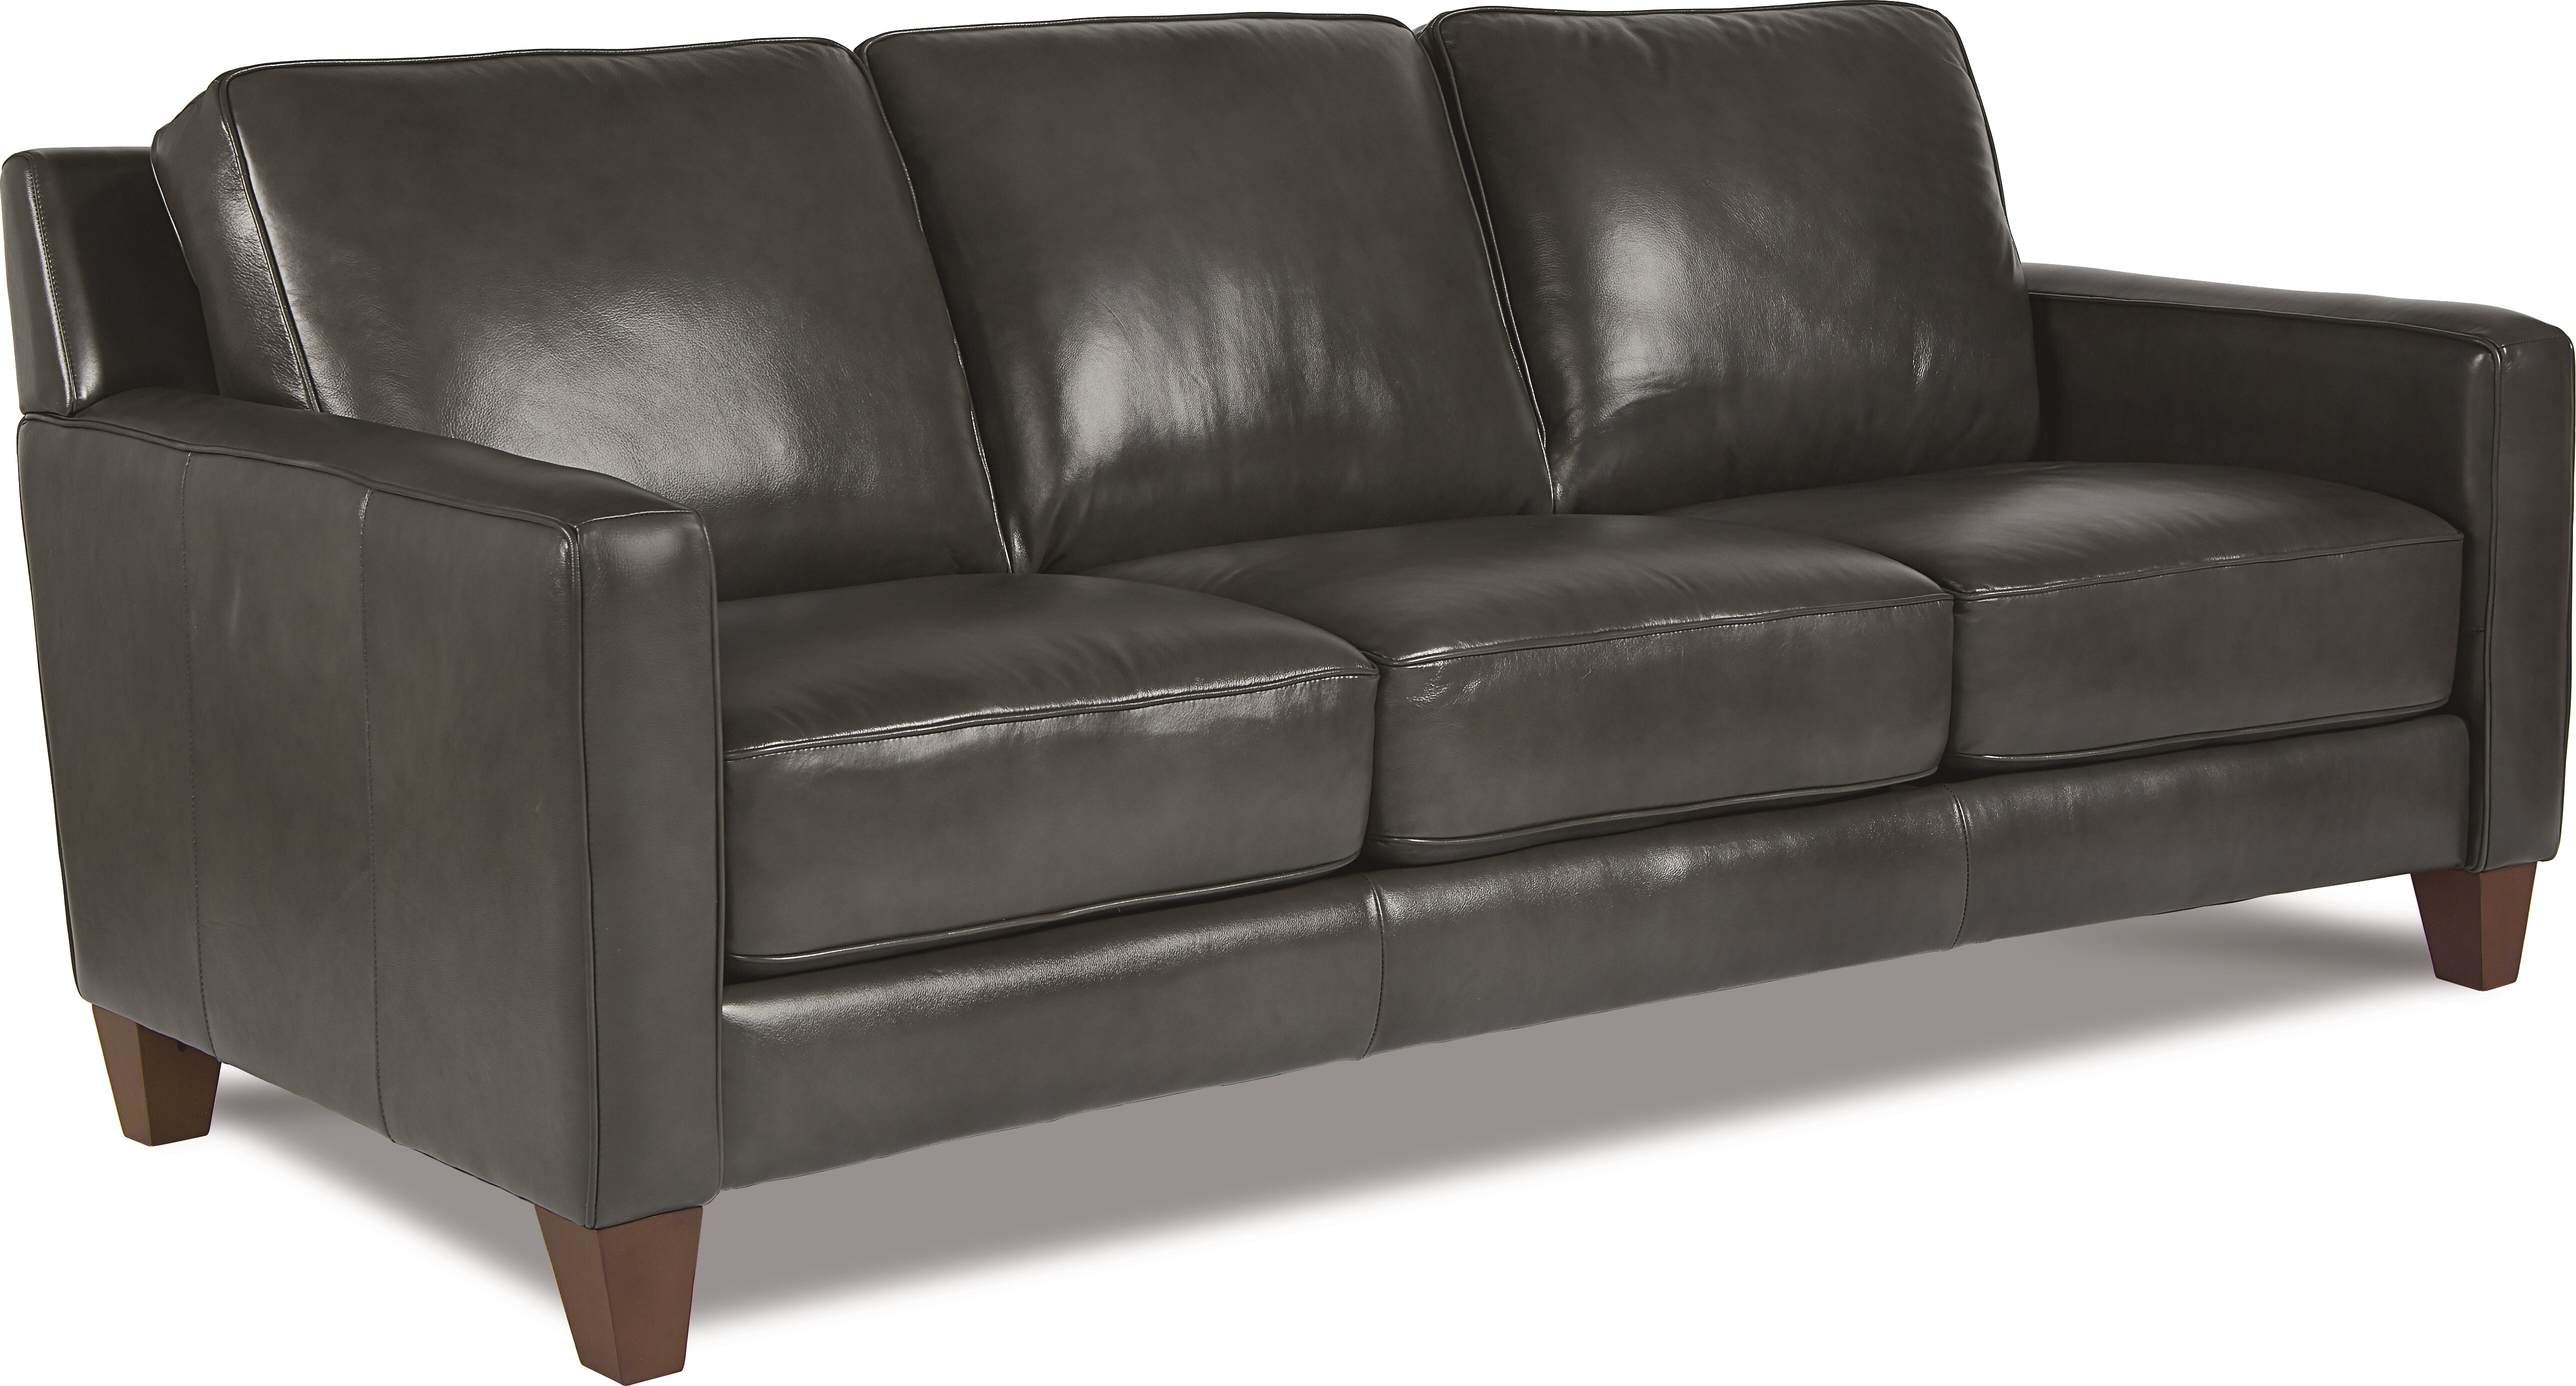 La-Z-Boy Archer Leather Sofa & Reviews | Wayfair